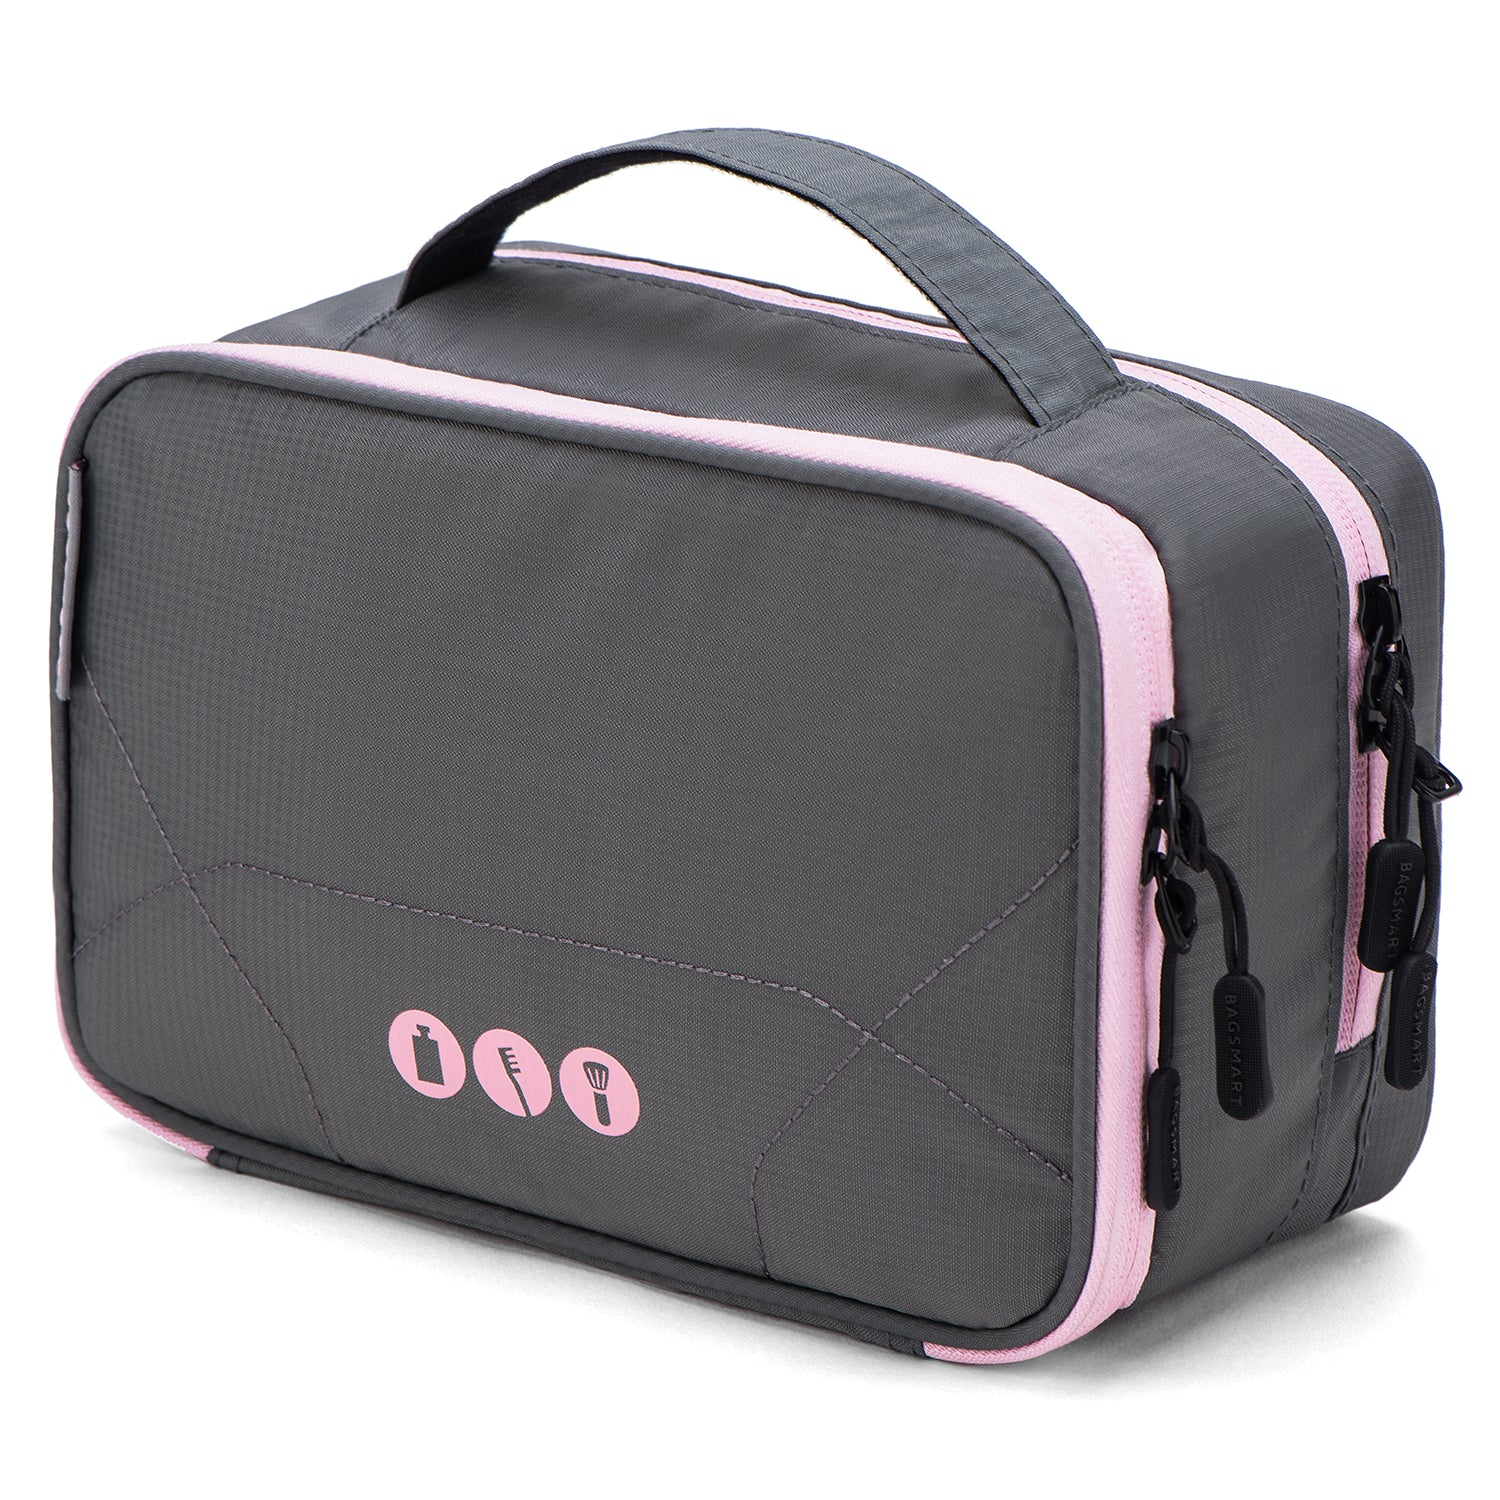 c2203a5a7f2d Double-layer Travel Toiletry Bag Portable Makeup Cosmetic Bag Travel Kit  Organizer